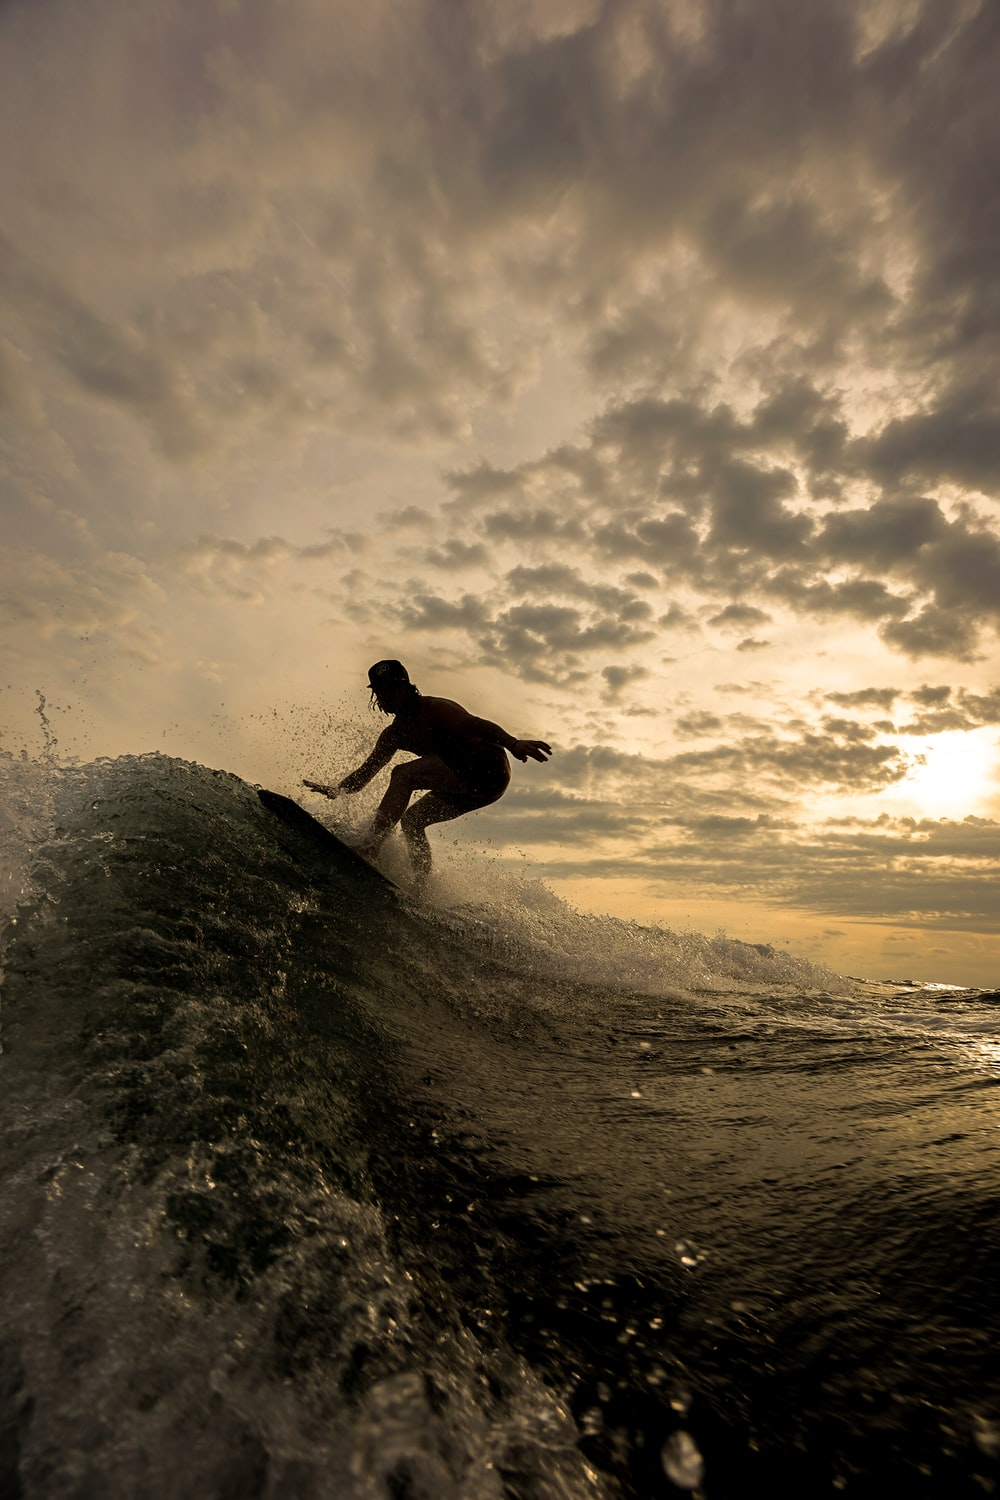 silhouette of person riding on surfboard